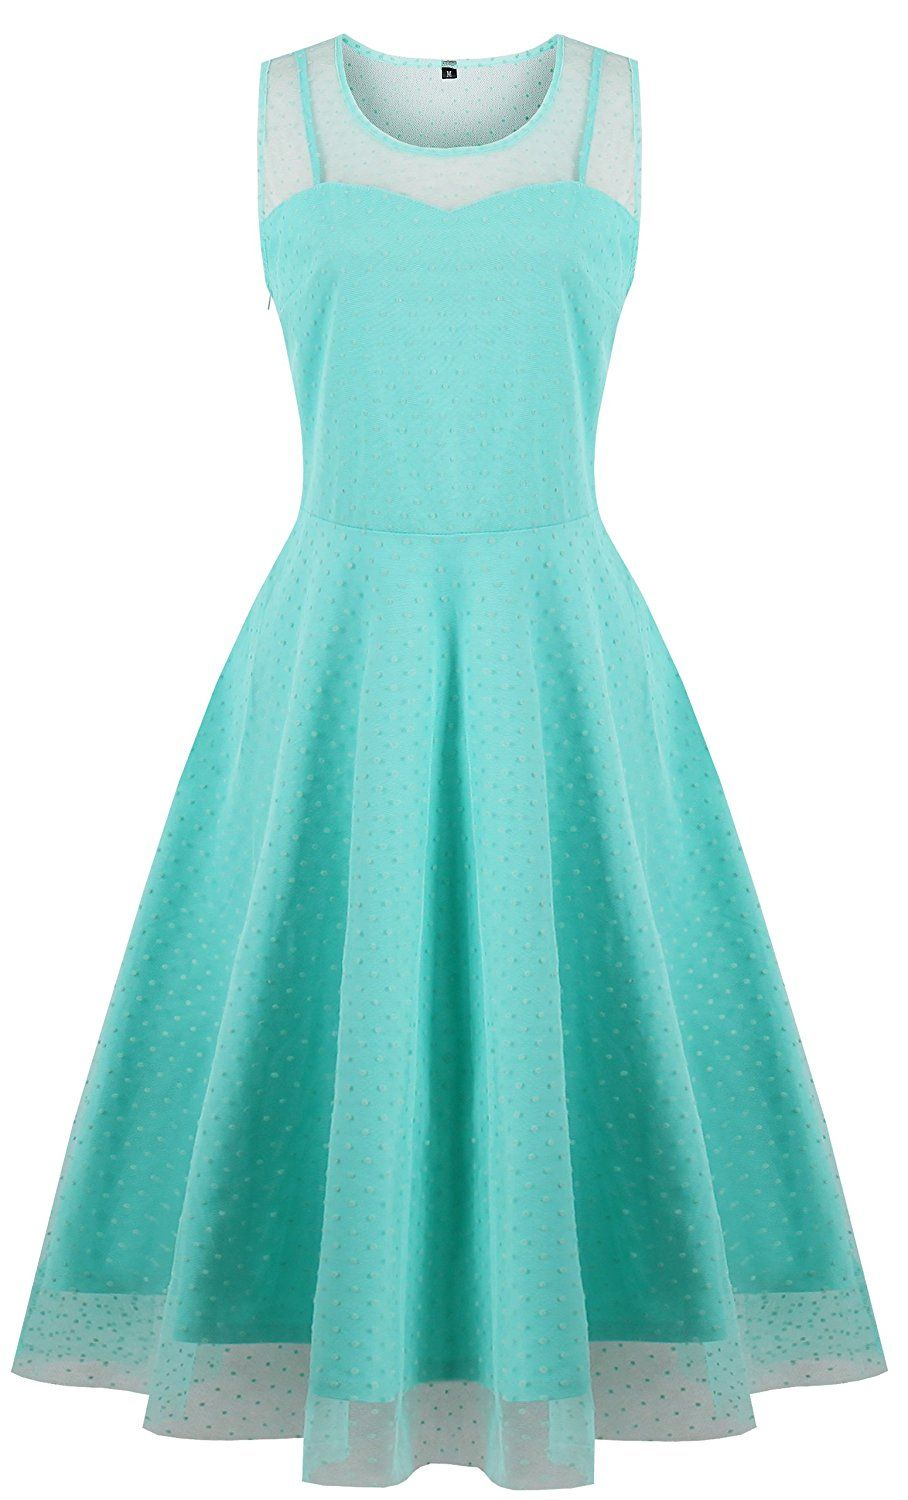 81dbec6a37 KILOLONE Womens 50s Plus Size Dresses Christmas Party Vintage Retro  Bridesmaid Evening Lace Sleeveless Cocktail Dress at Amazon Women s Clothing  store